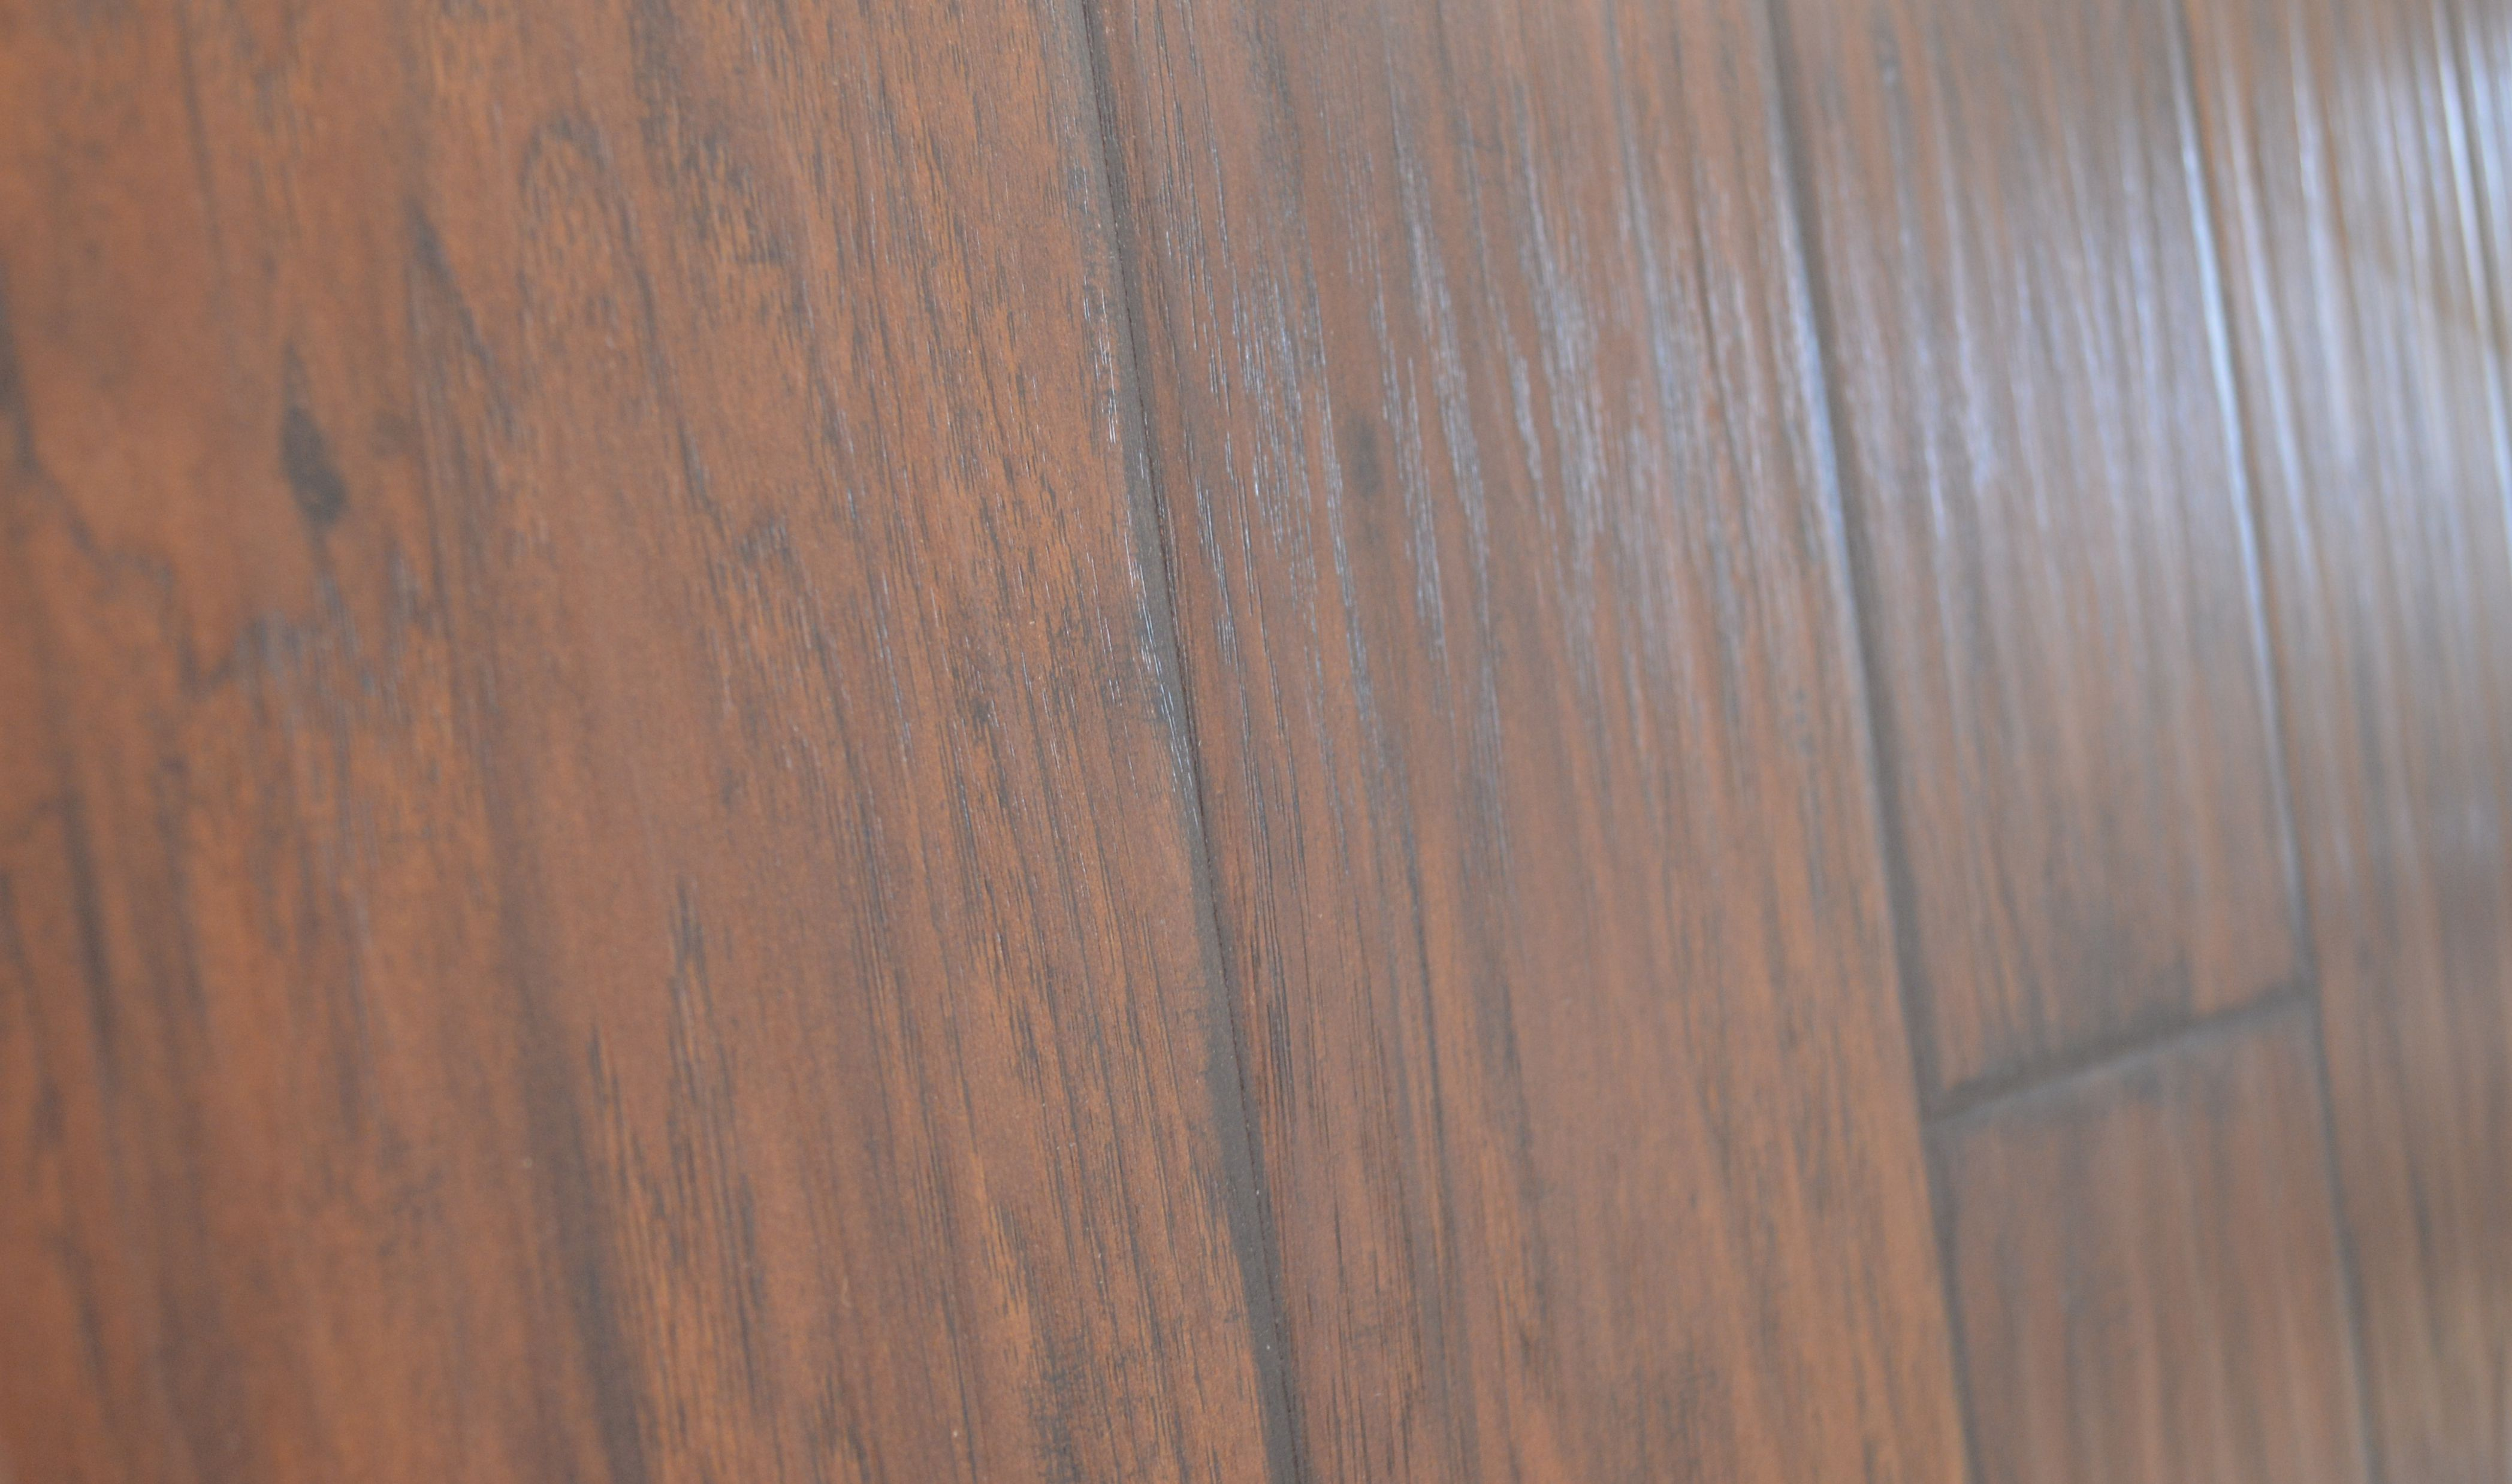 Copper Ridge 6 1 8 X 5 16 Bourbon Pecan Side View Hardwood Flooring Hardwood Floors